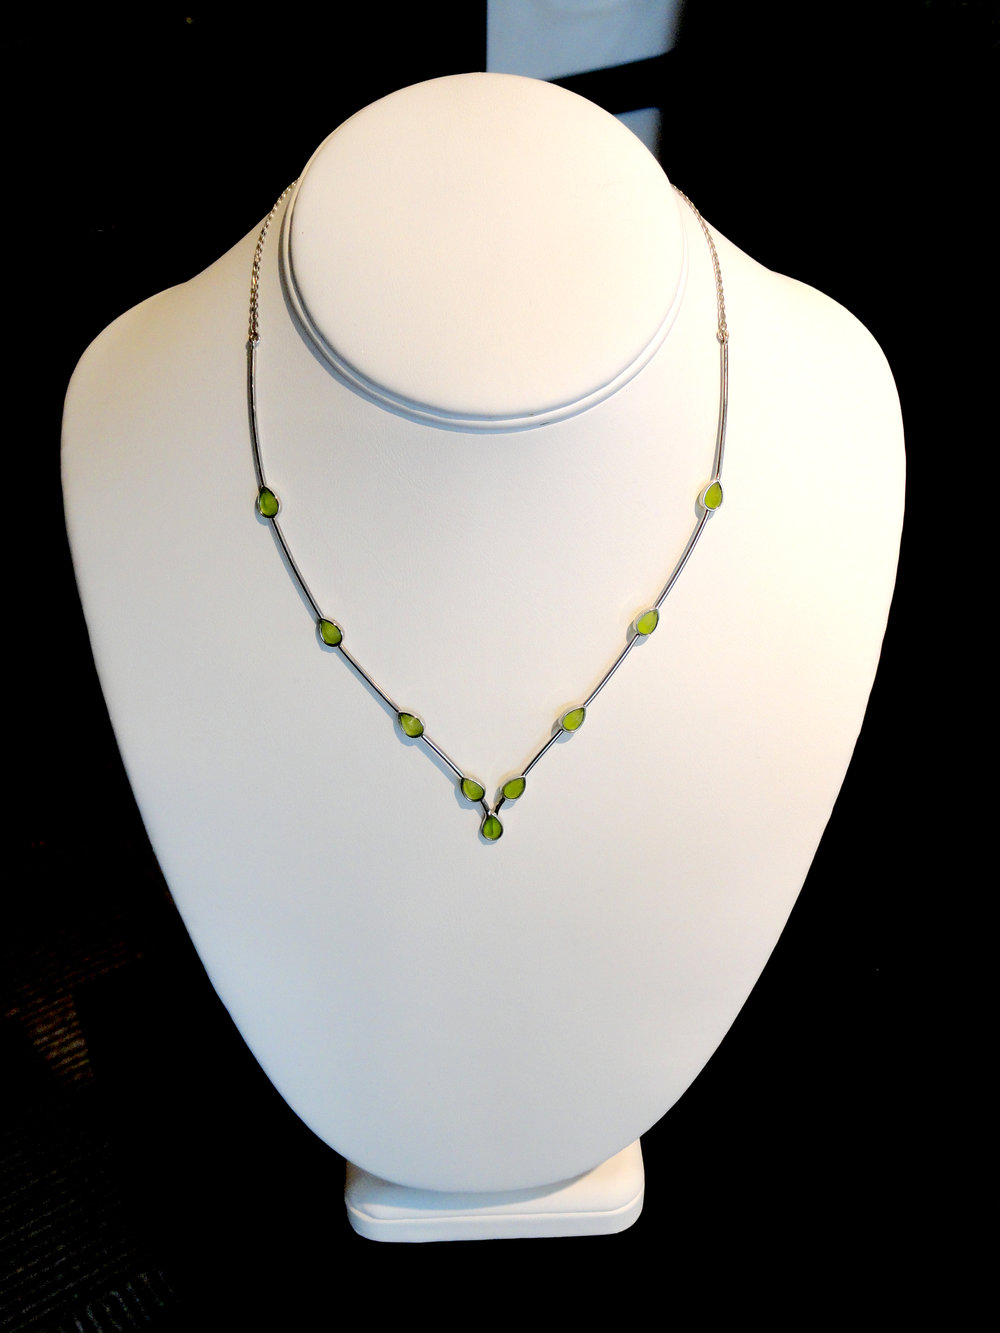 darvier-satin-peridot-dew-drop-necklace.JPG